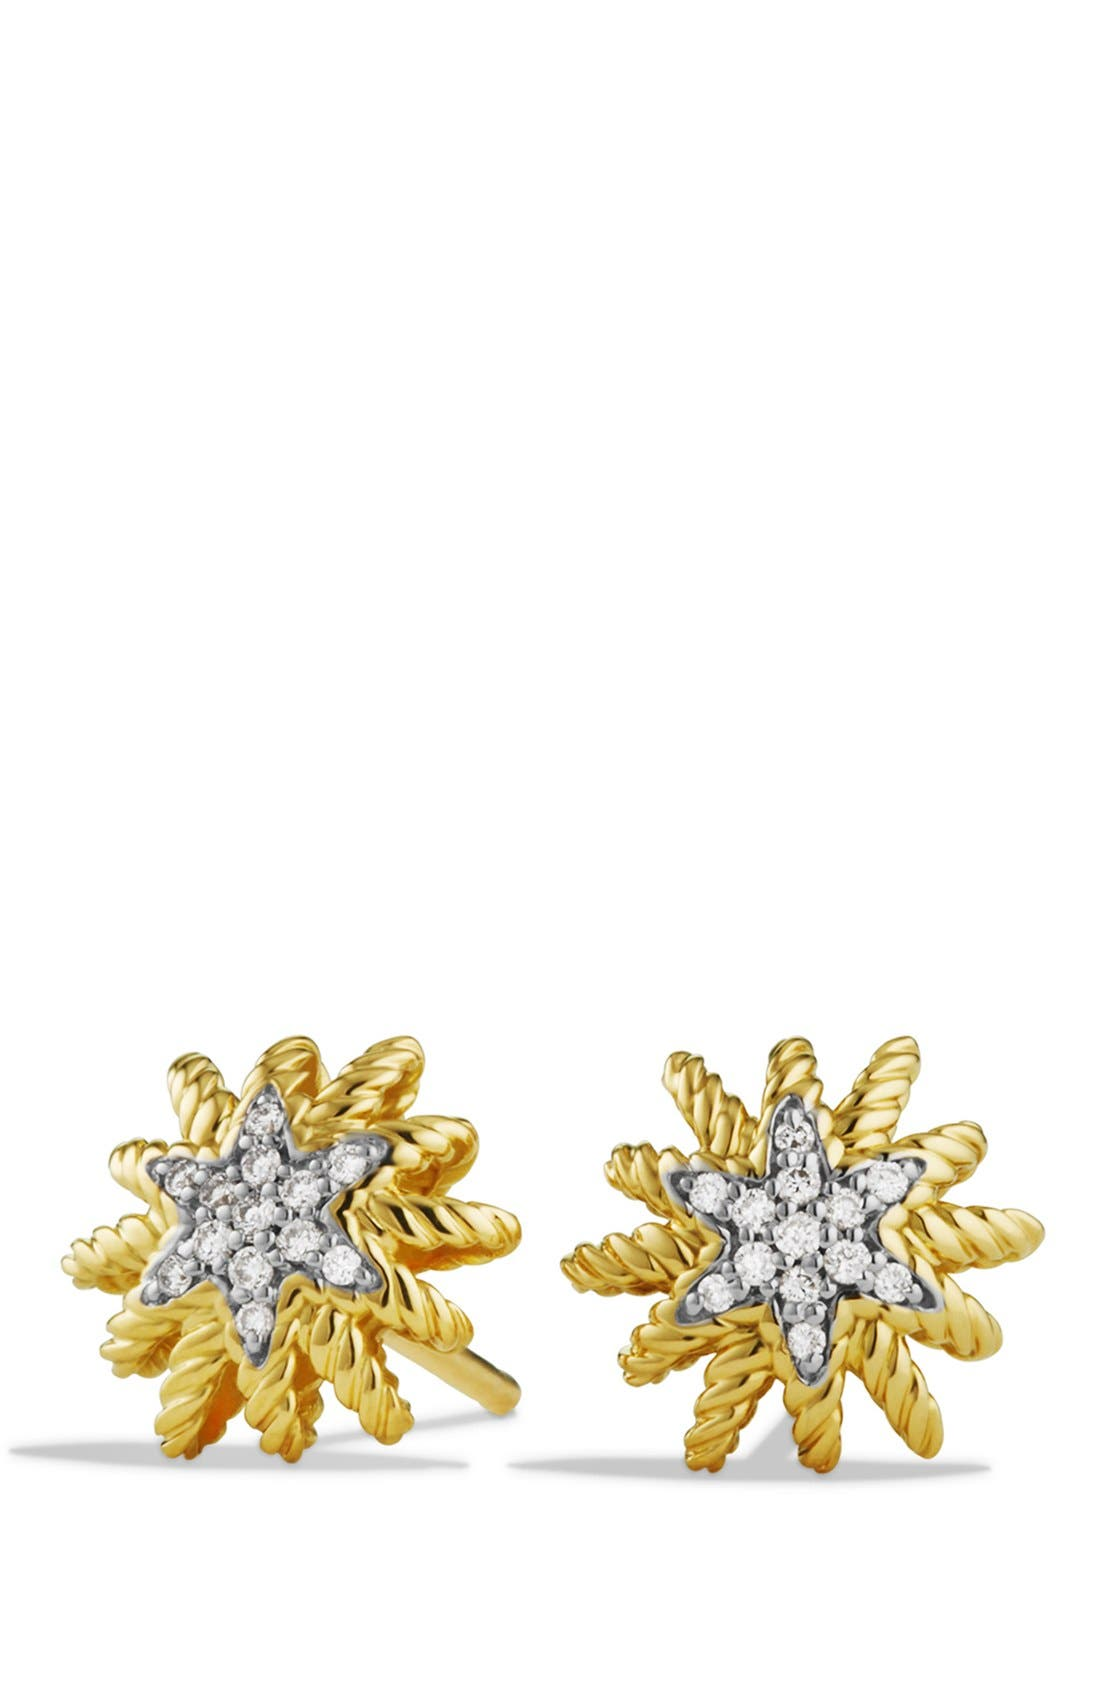 Alternate Image 1 Selected - David Yurman 'Starburst' Mini Earrings with Diamonds in Gold